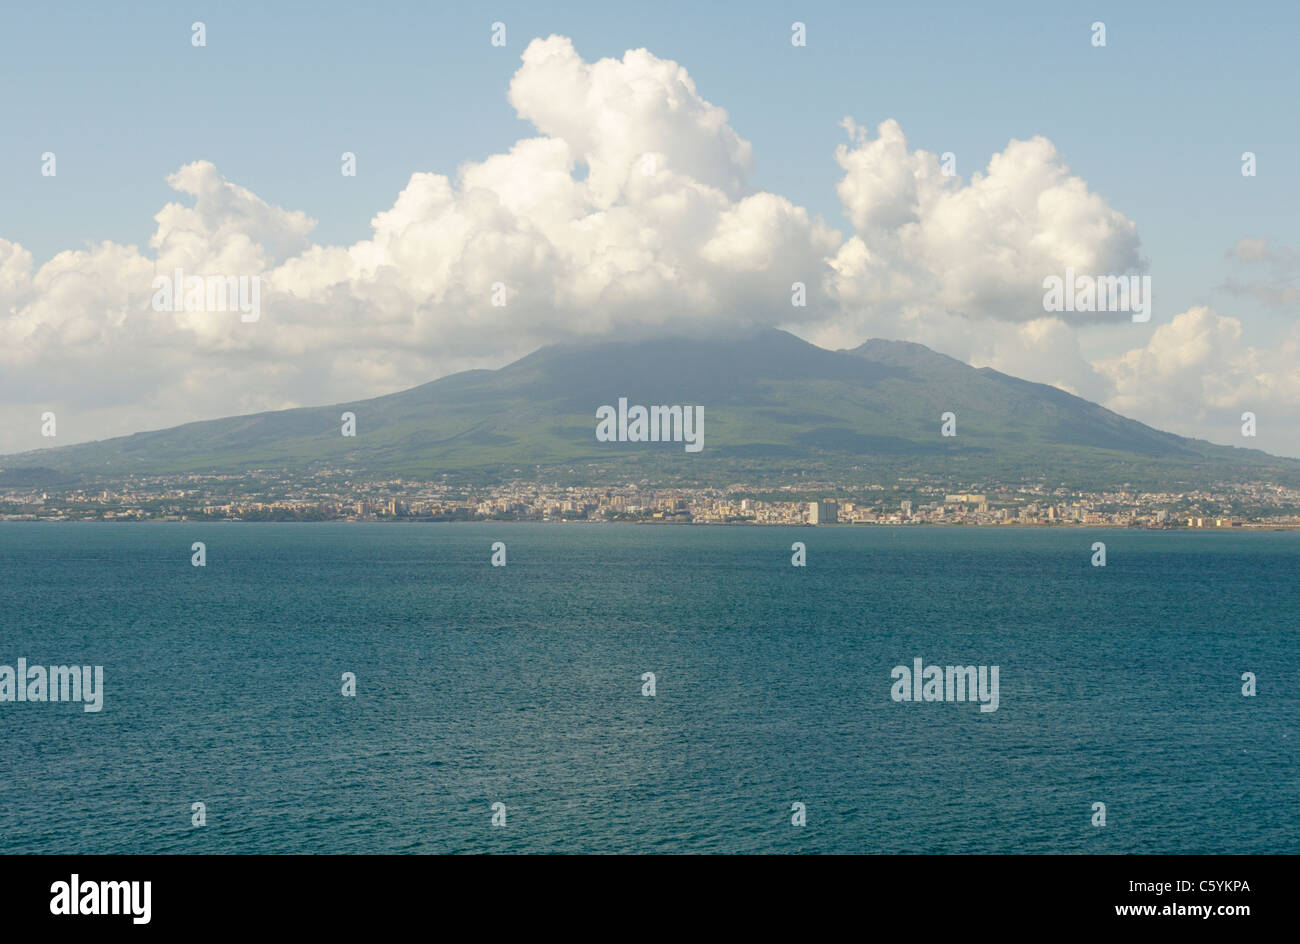 View of Vesuvius and Naples from across Naples Bay (Gulf of Naples) - Stock Image